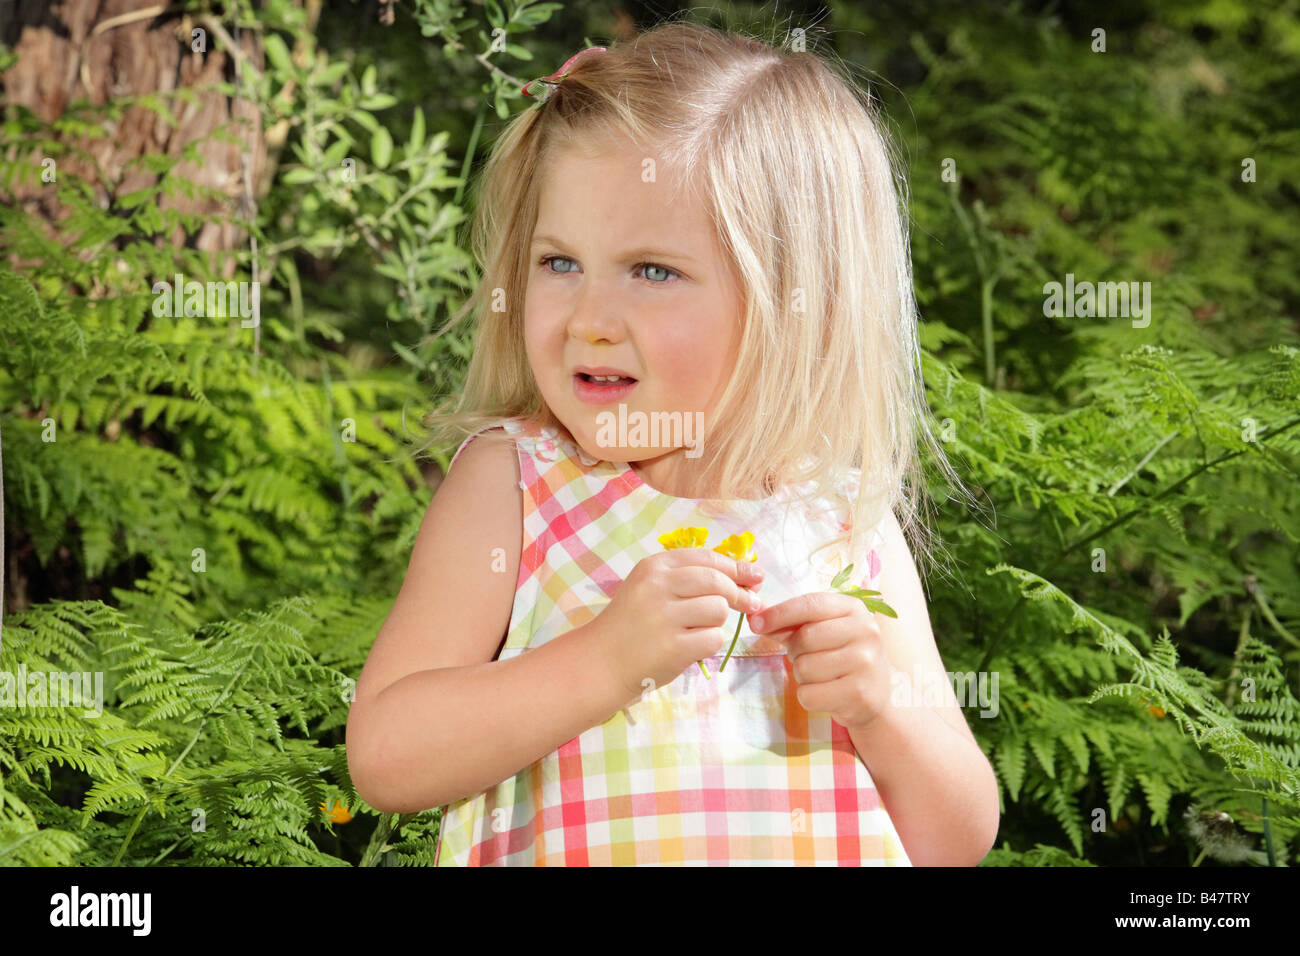 Young Girl picking wildflowers parmi les fougères Photo Stock